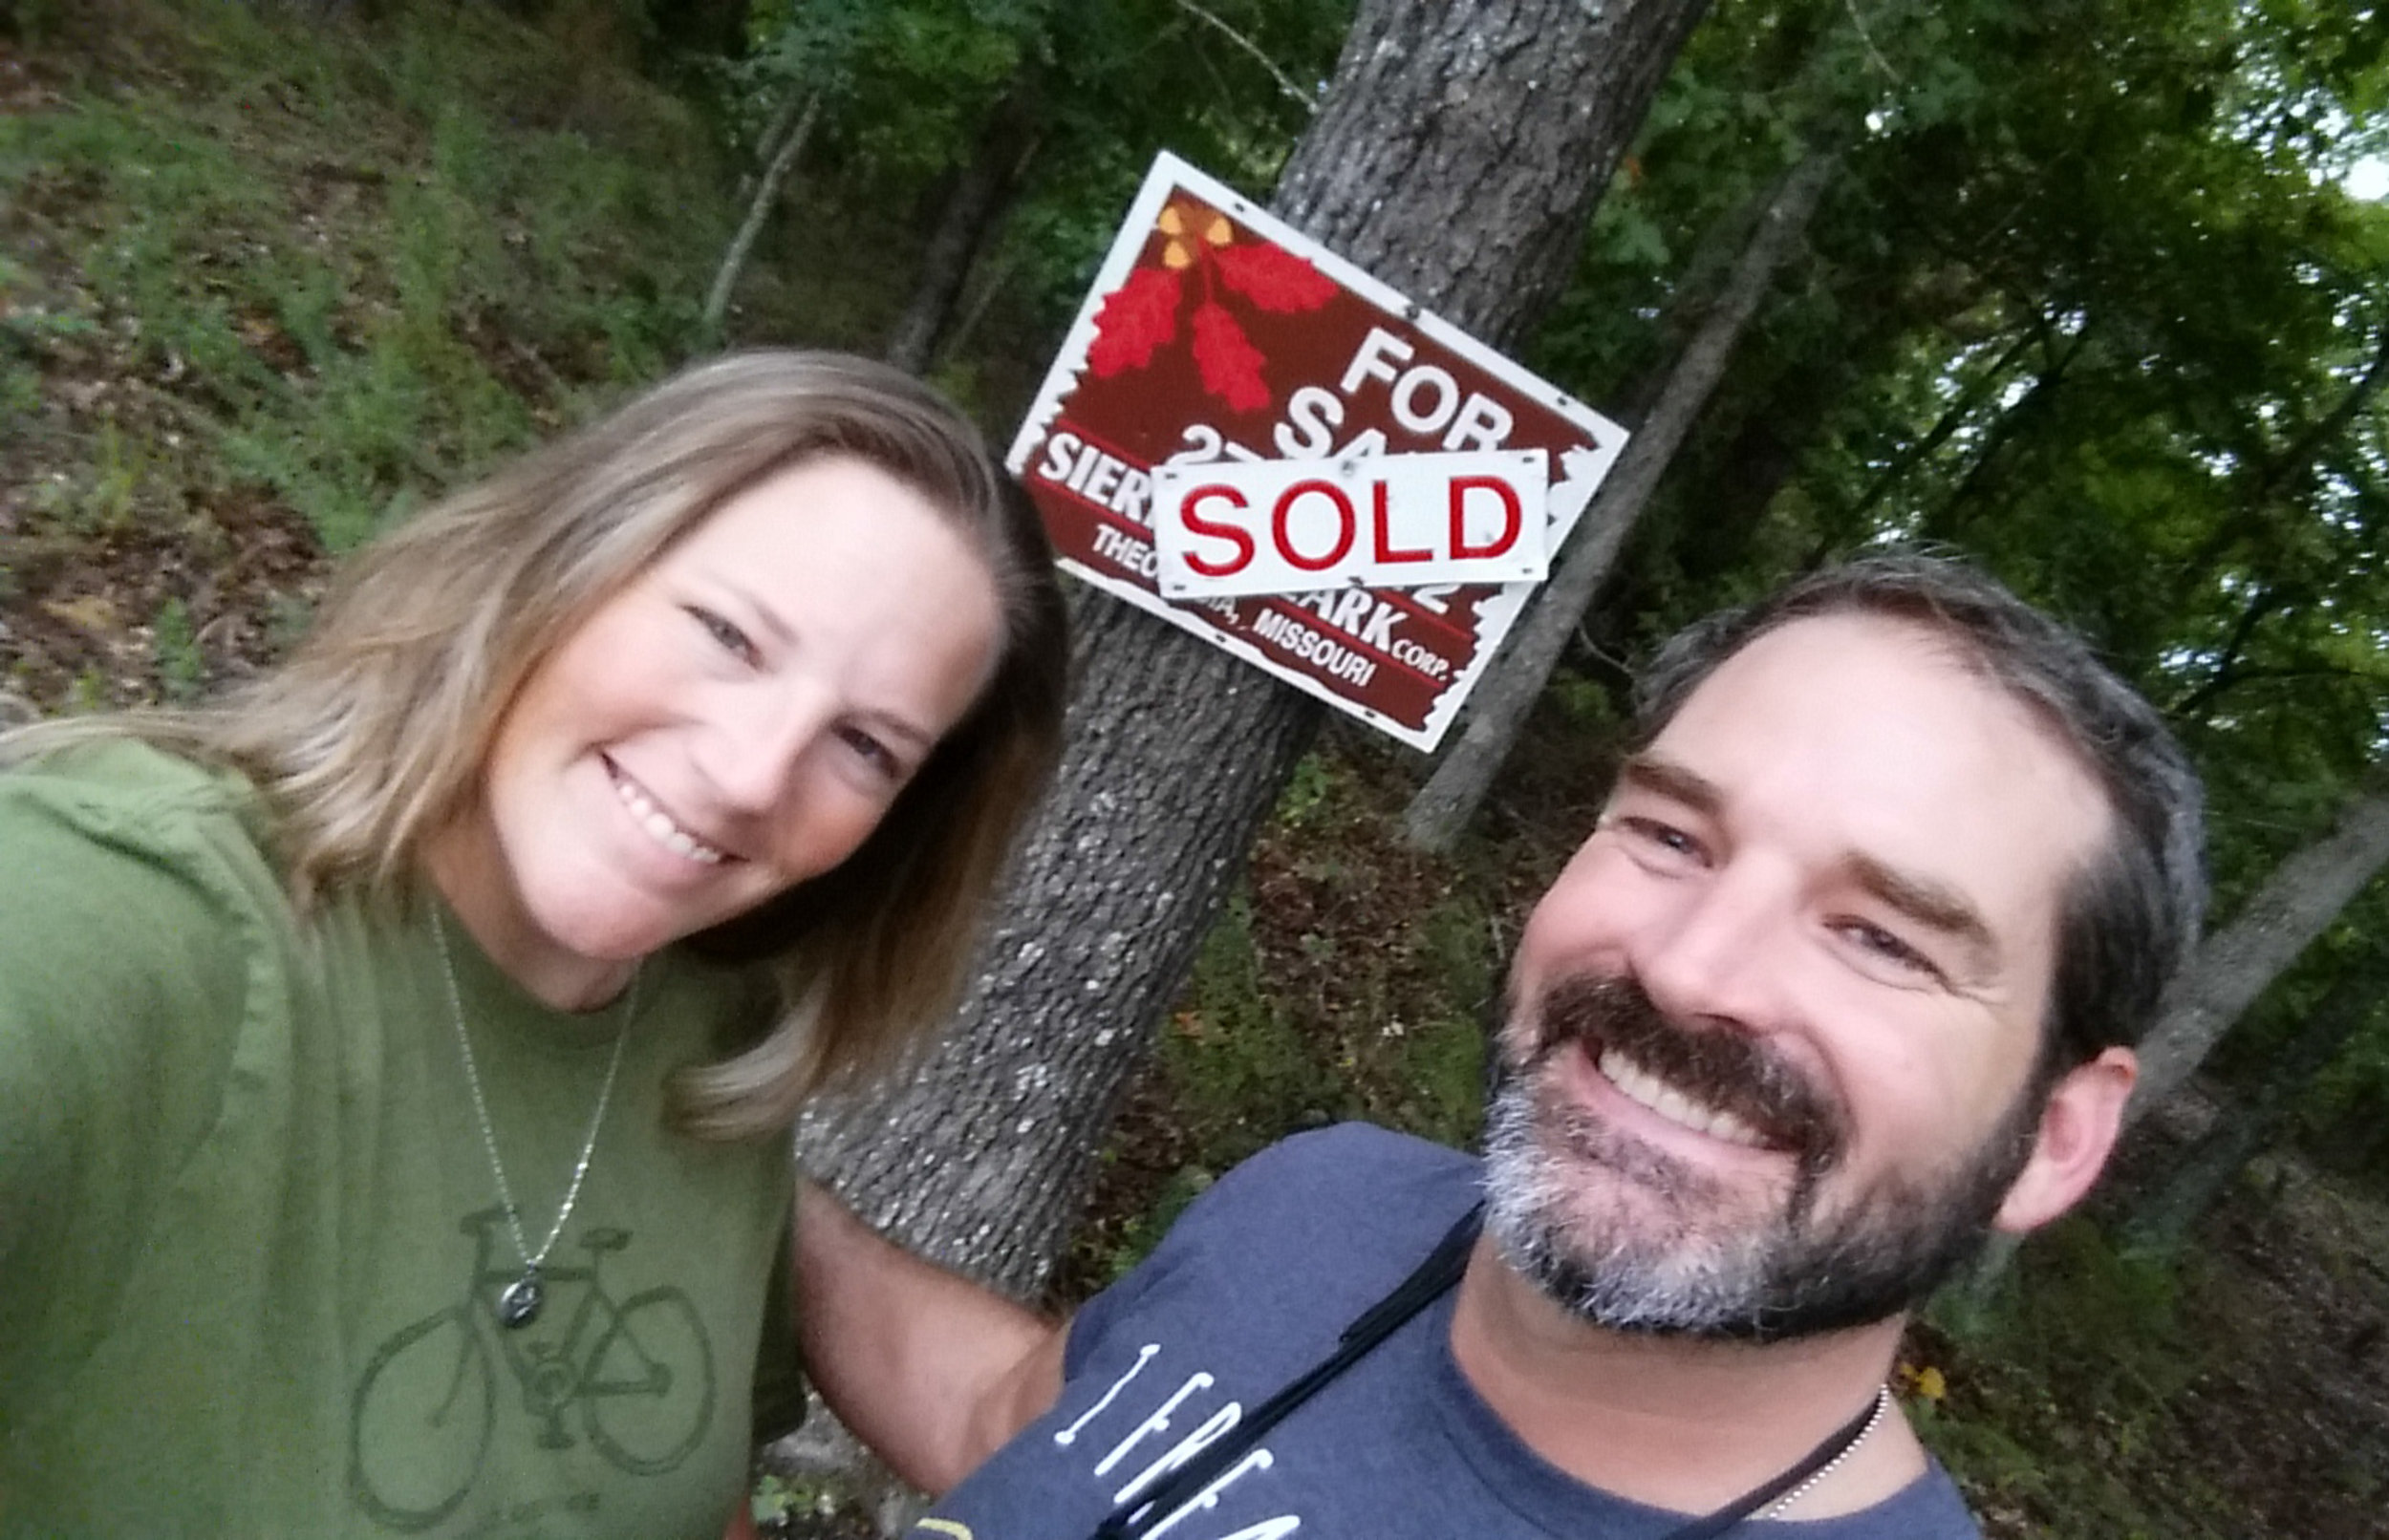 Sierra Ozark Corp. happy buyers